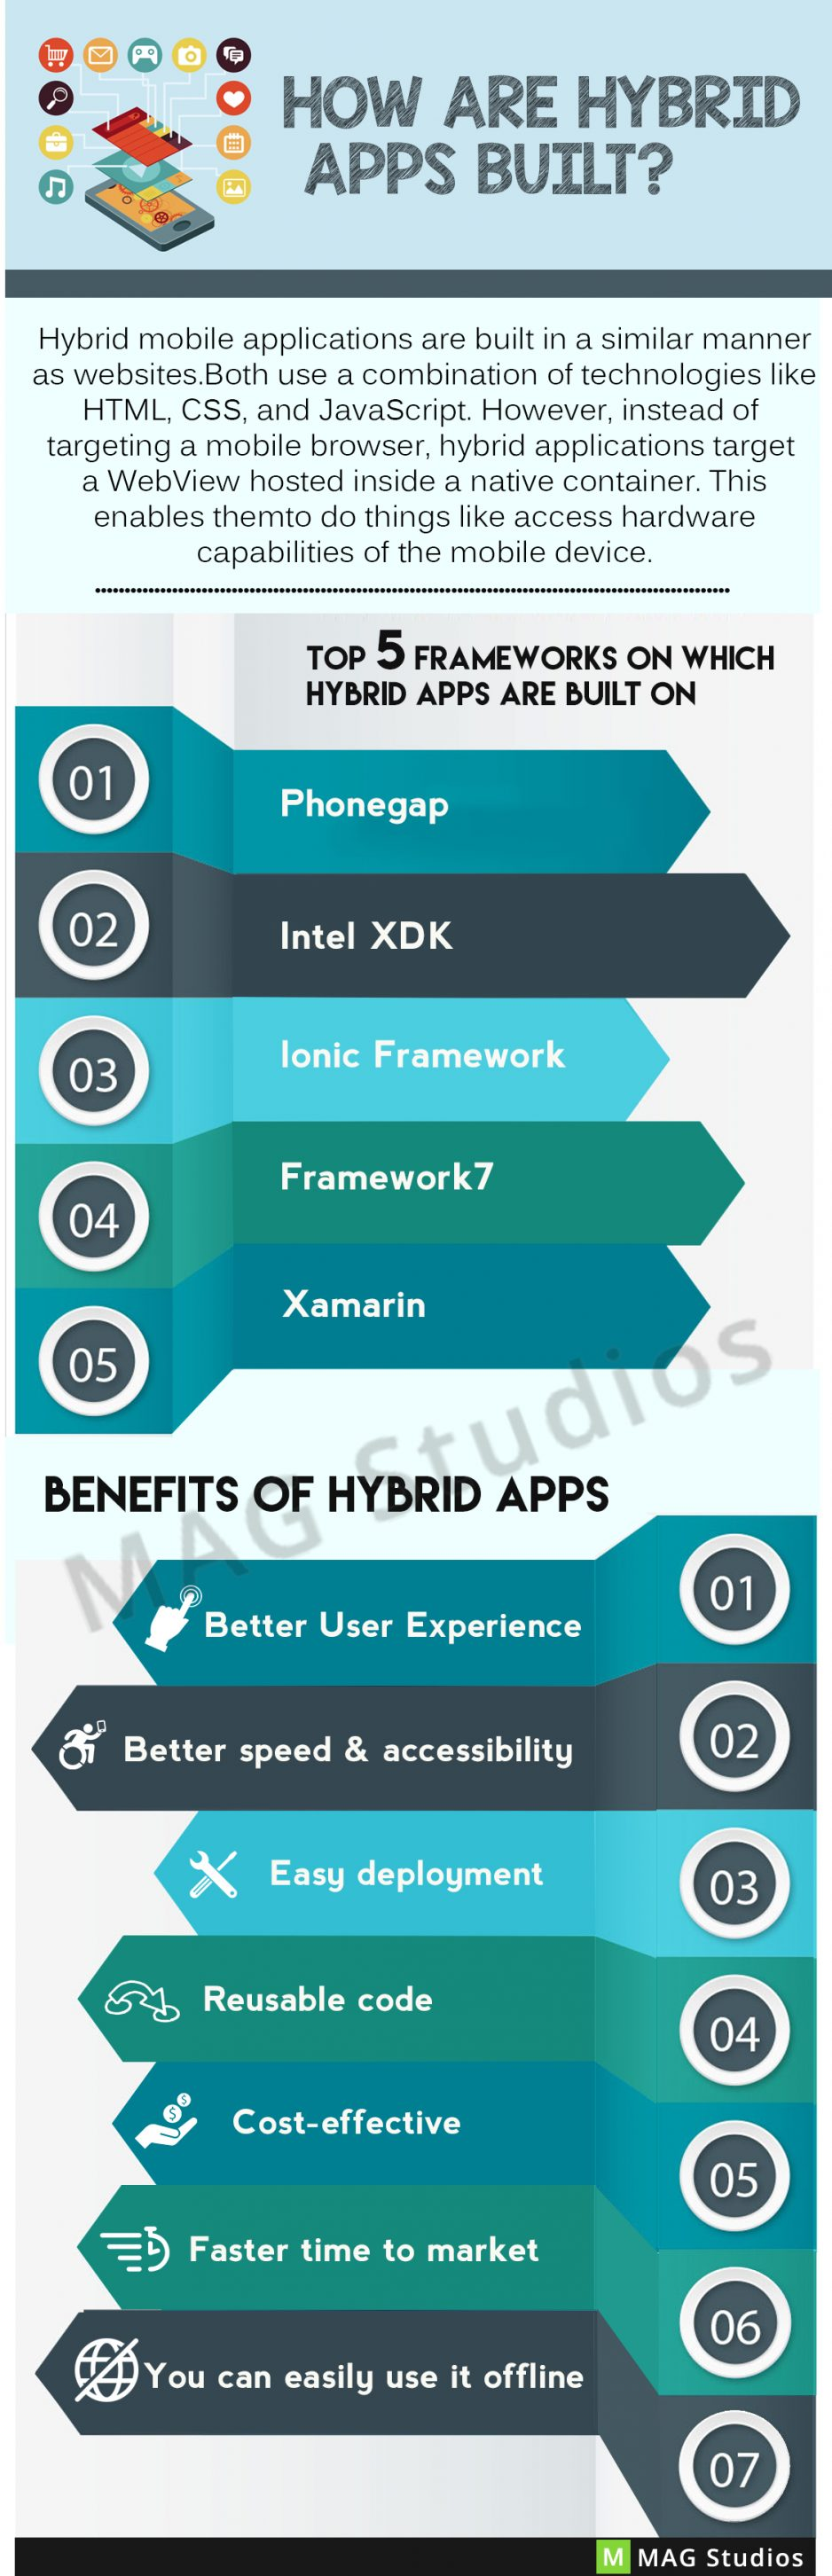 How are Hybrid Apps built and what are its benefits?